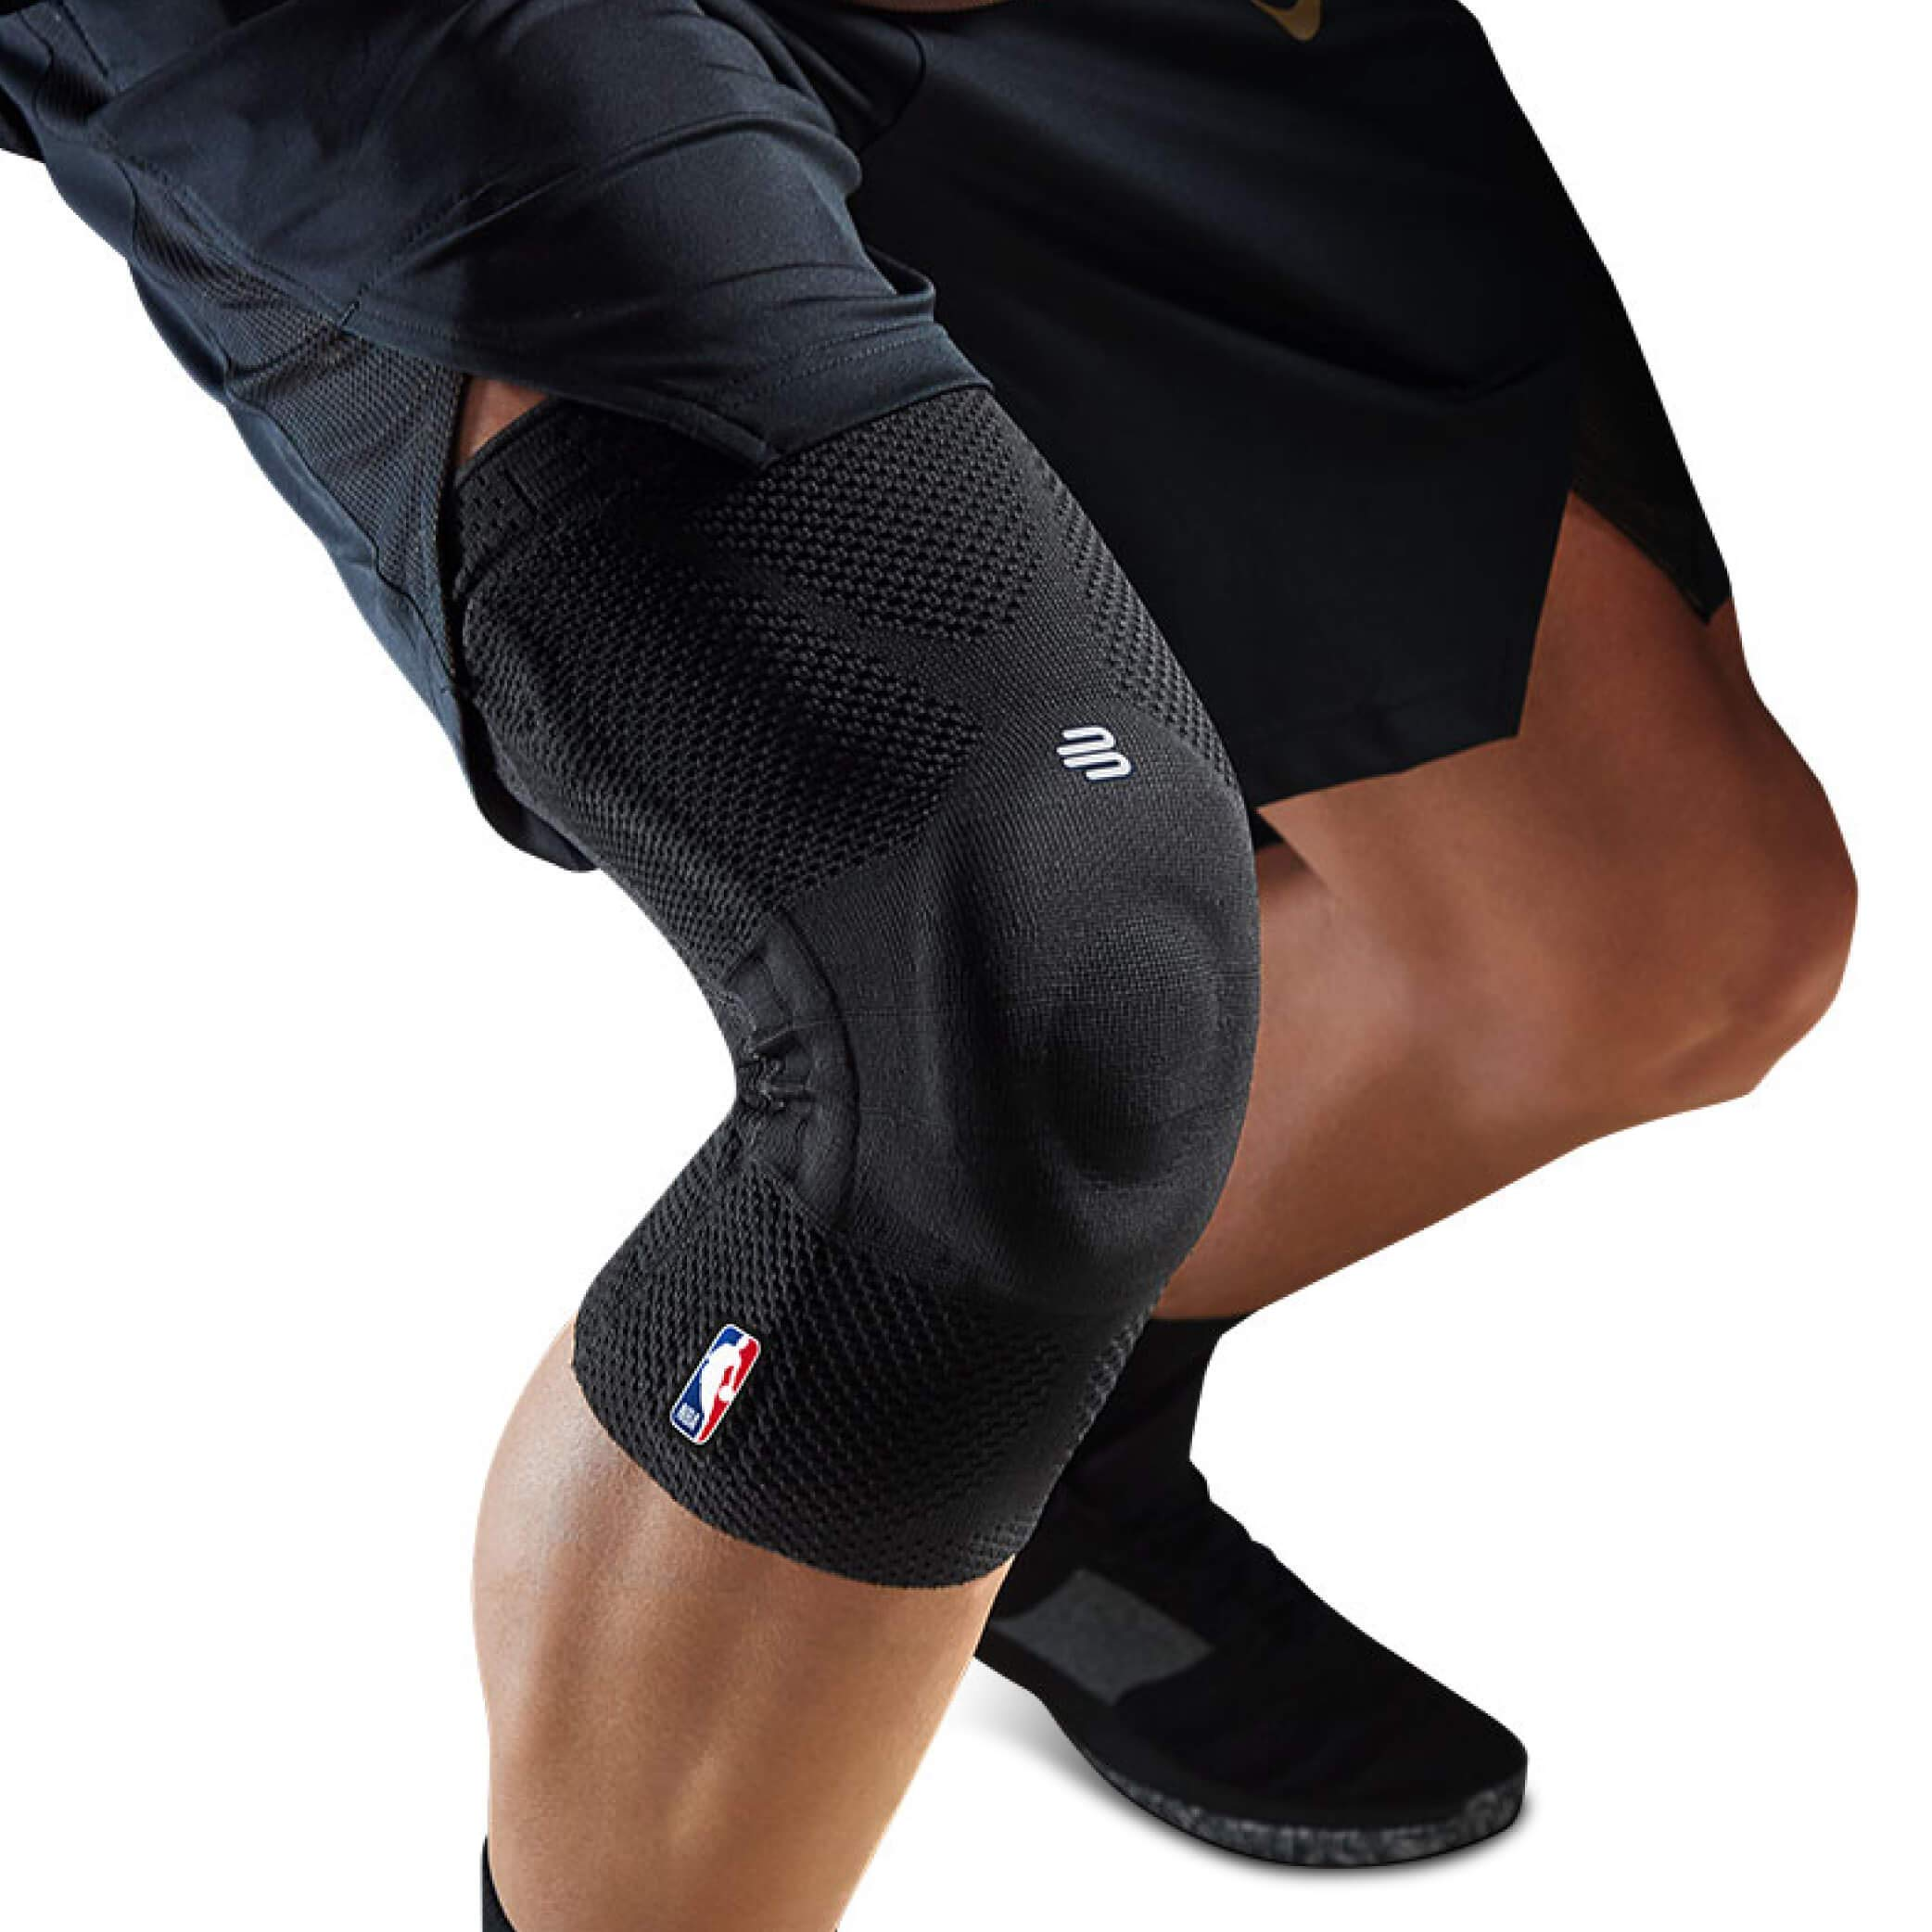 Bauerfeind GenuTrain NBA Knee Brace - Basketball Support with Medical Compression - Sleeve Design with Patella Pad Gel Ring for Pain Relief & Stabilization (Black, M) by Bauerfeind